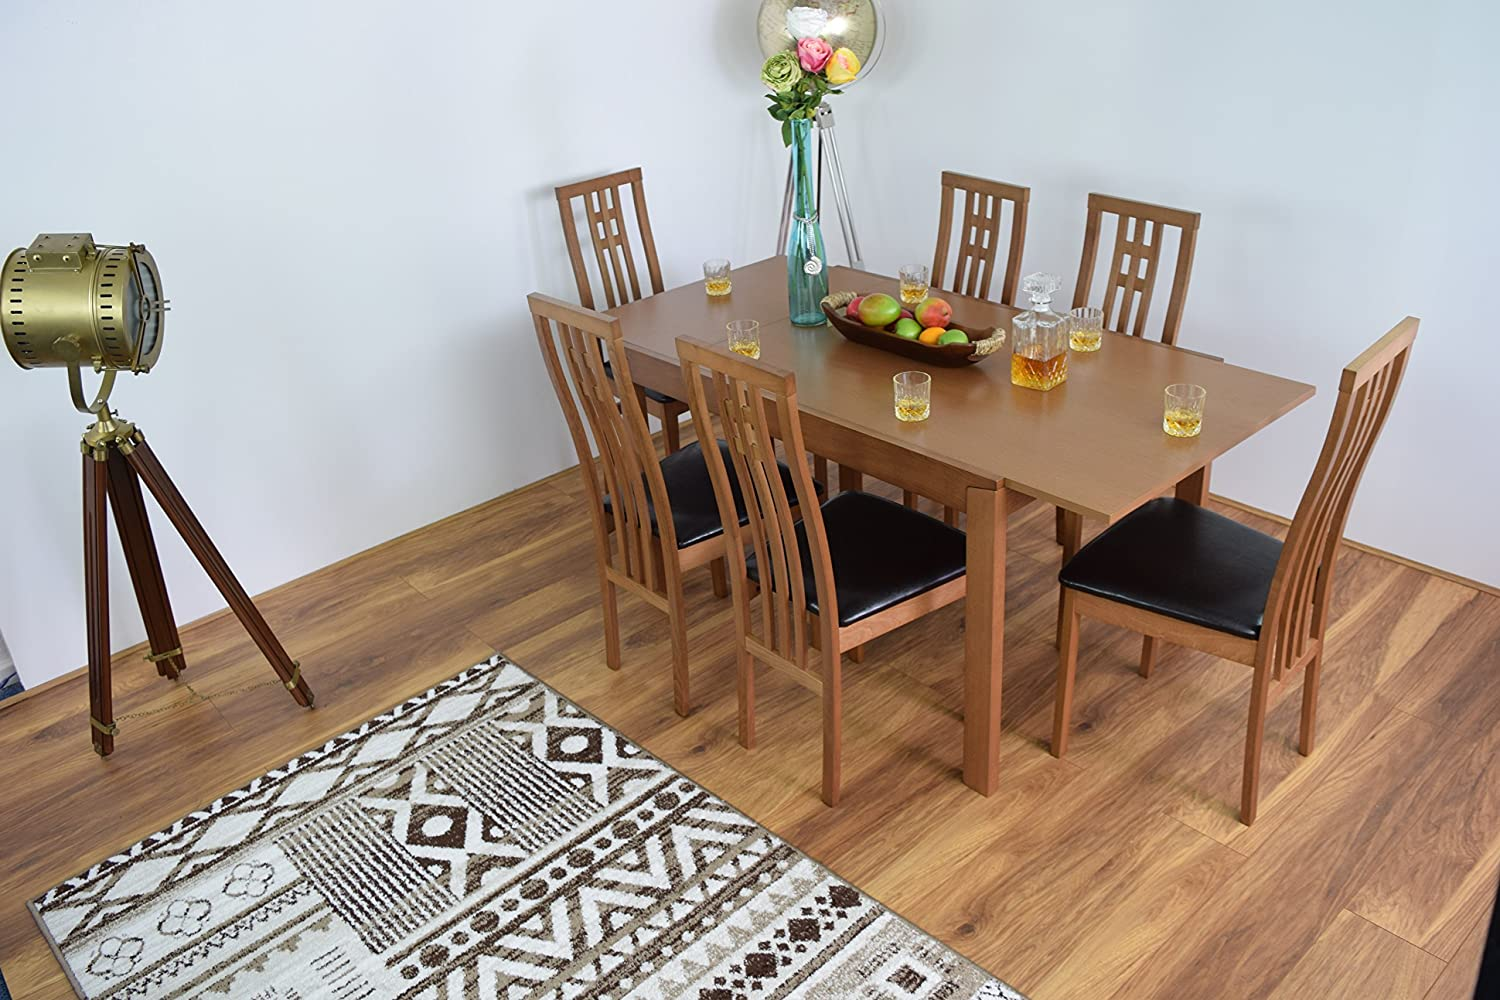 AHOC Extending Honey Oak Dining Room Table And 6 Chairs Solid Wood Dinner Set Cambridge EXTENDABLE MODERN WOODENDINNER TABLES SETS CHAIRS